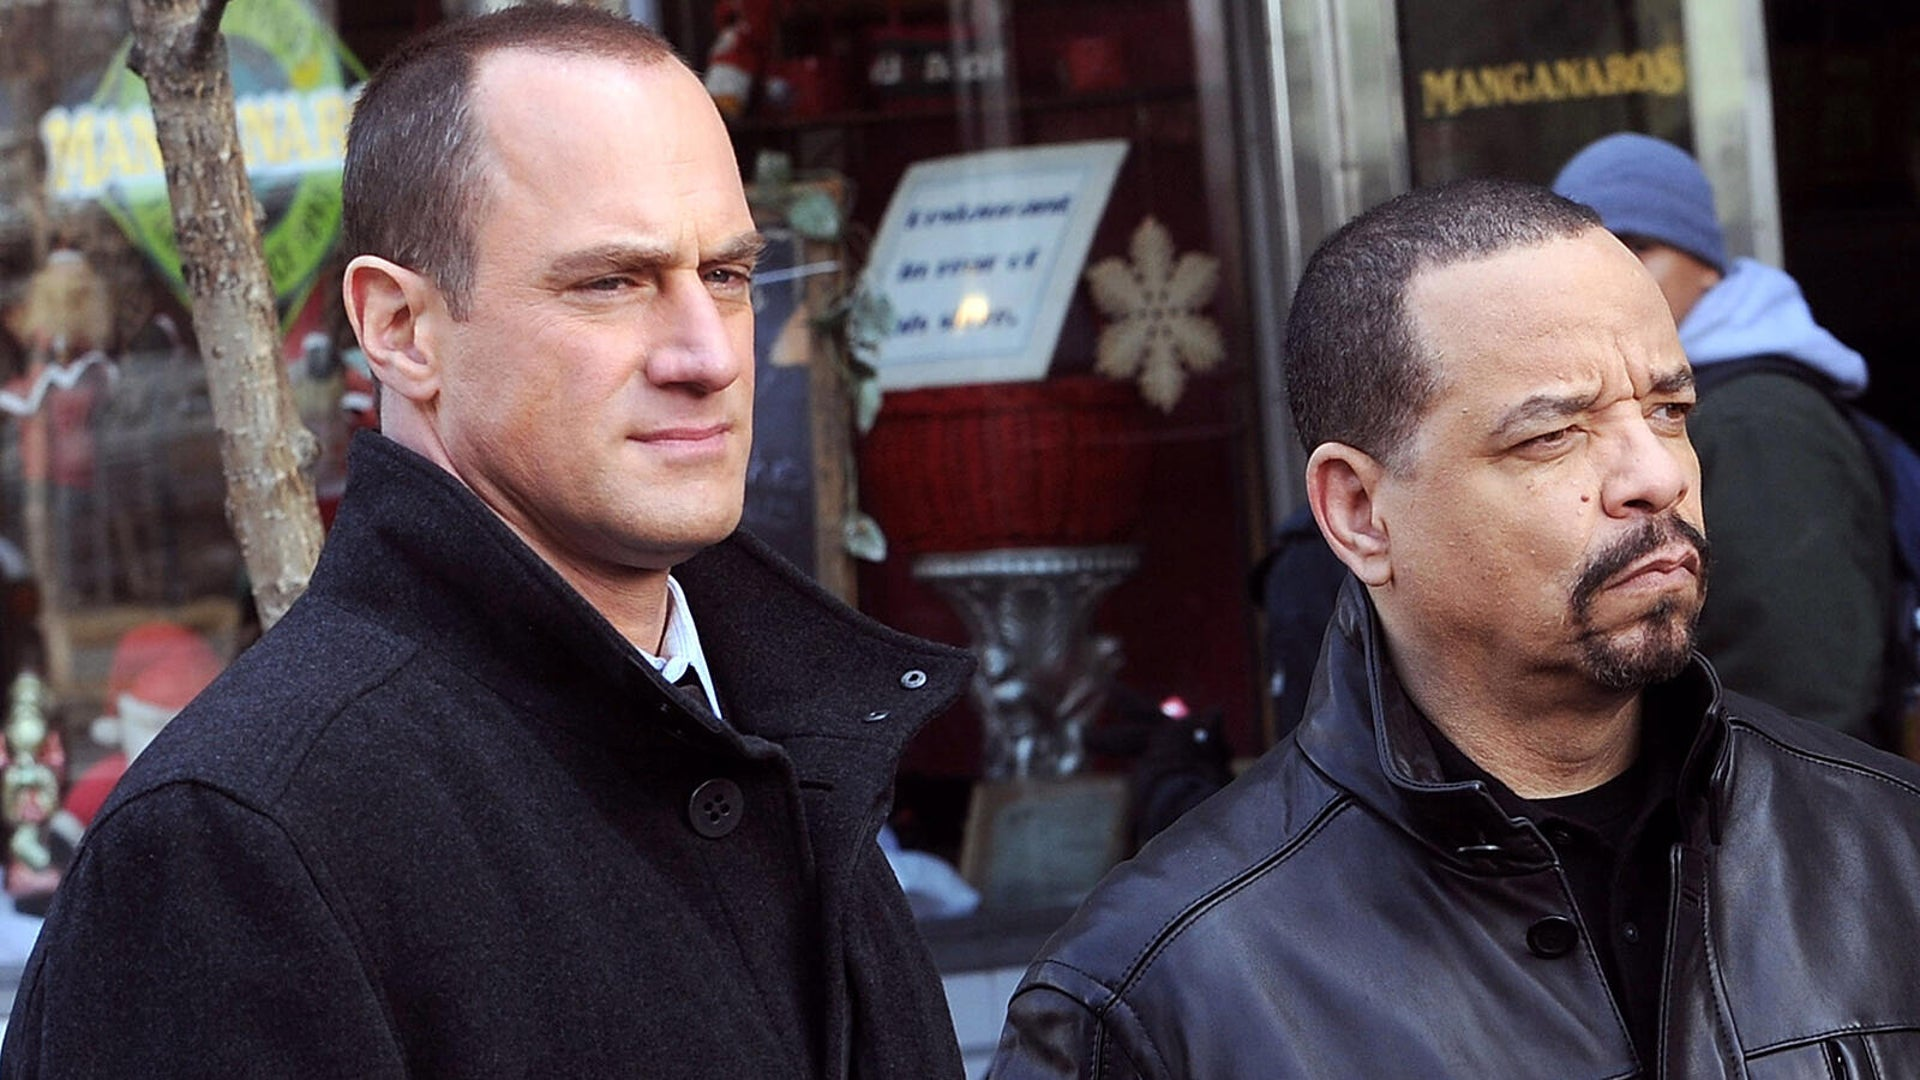 Christopher Meloni and Ice-T filming on location for Law & Order SVU